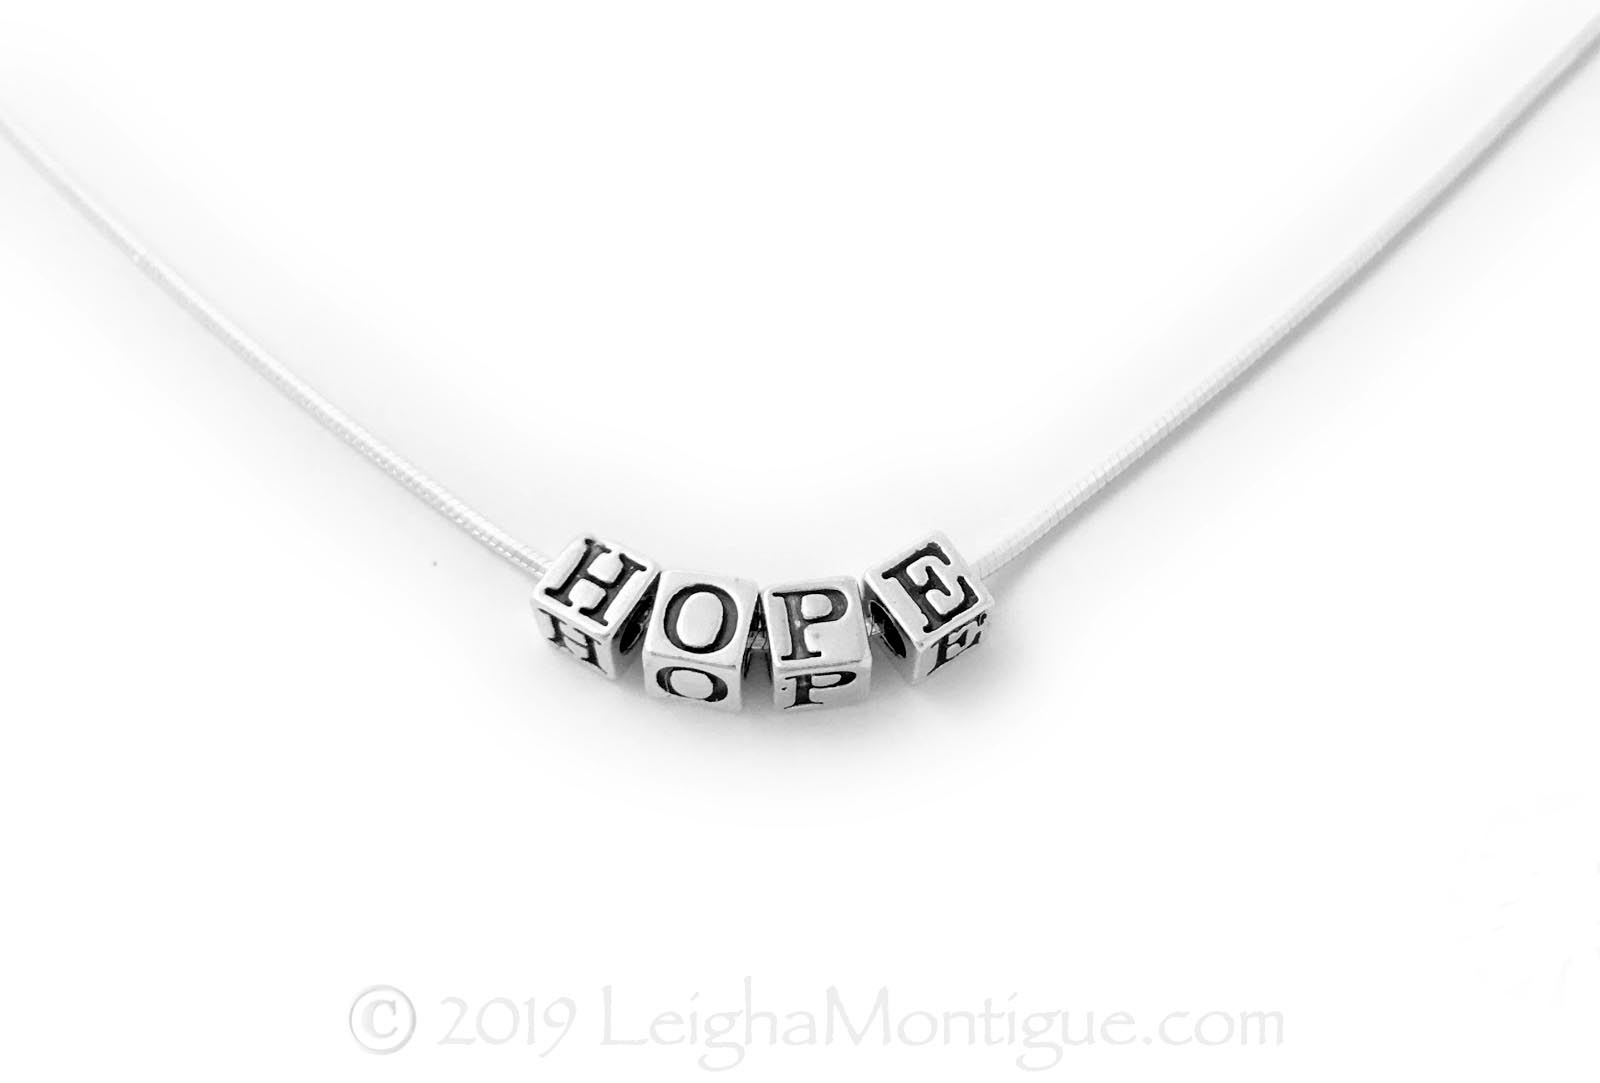 Sterling Silver Inspirational Necklace with HOPE - choose any message - JBL-N-Snake 4.5mm HOPE